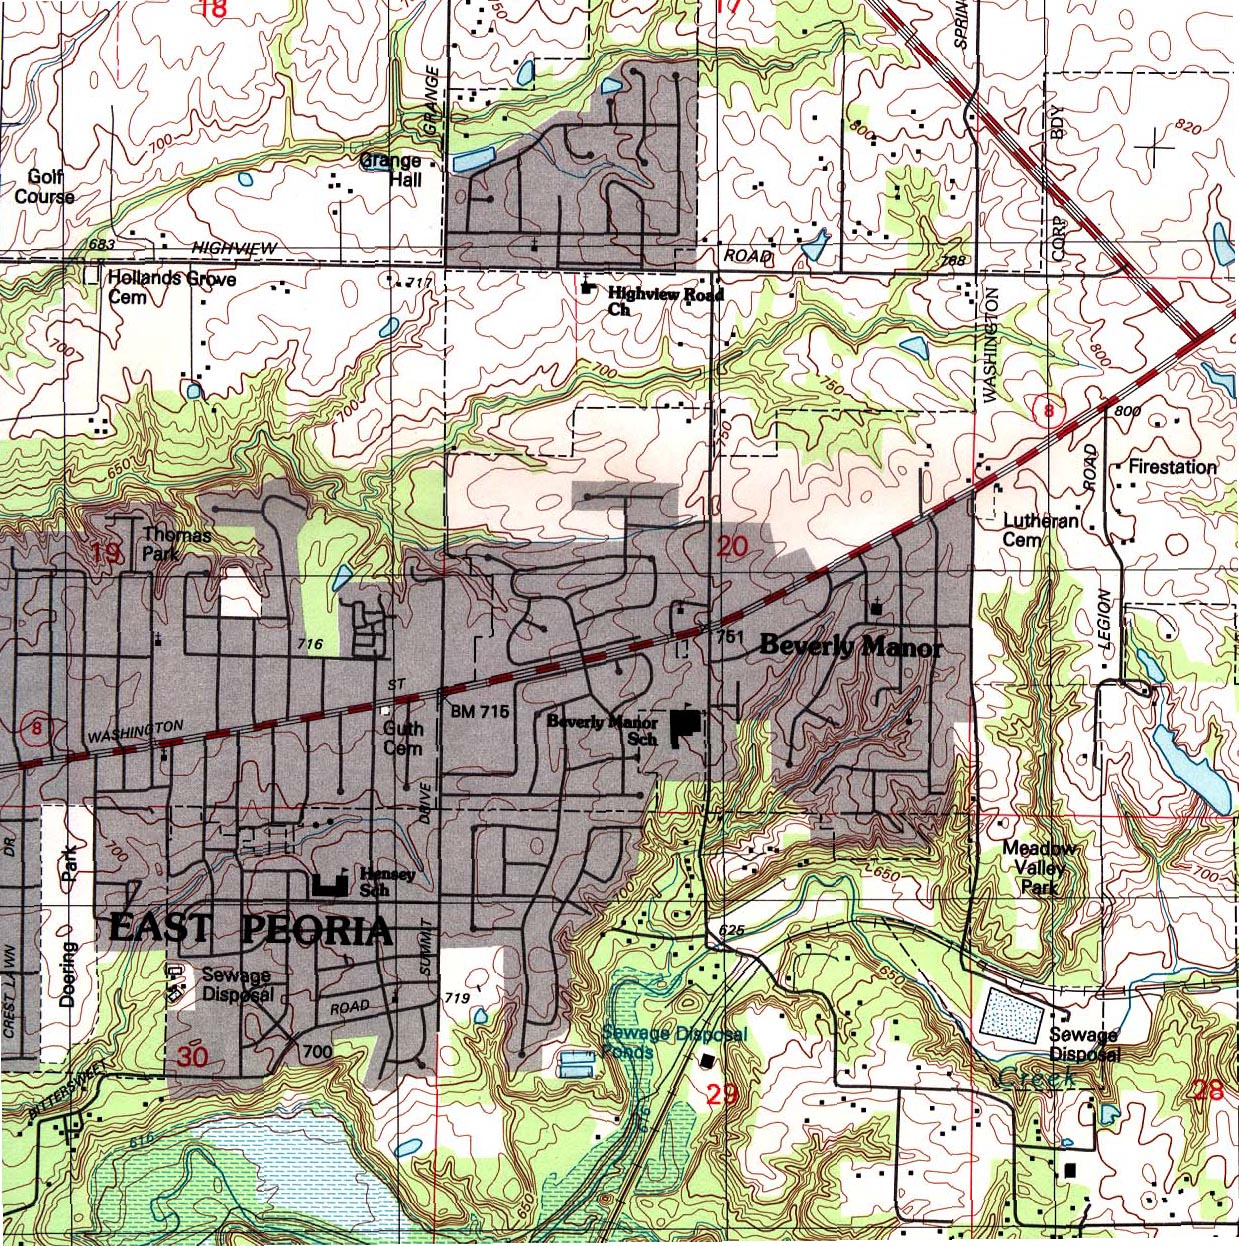 East Peoria Topographic City Map, Illinois, United States